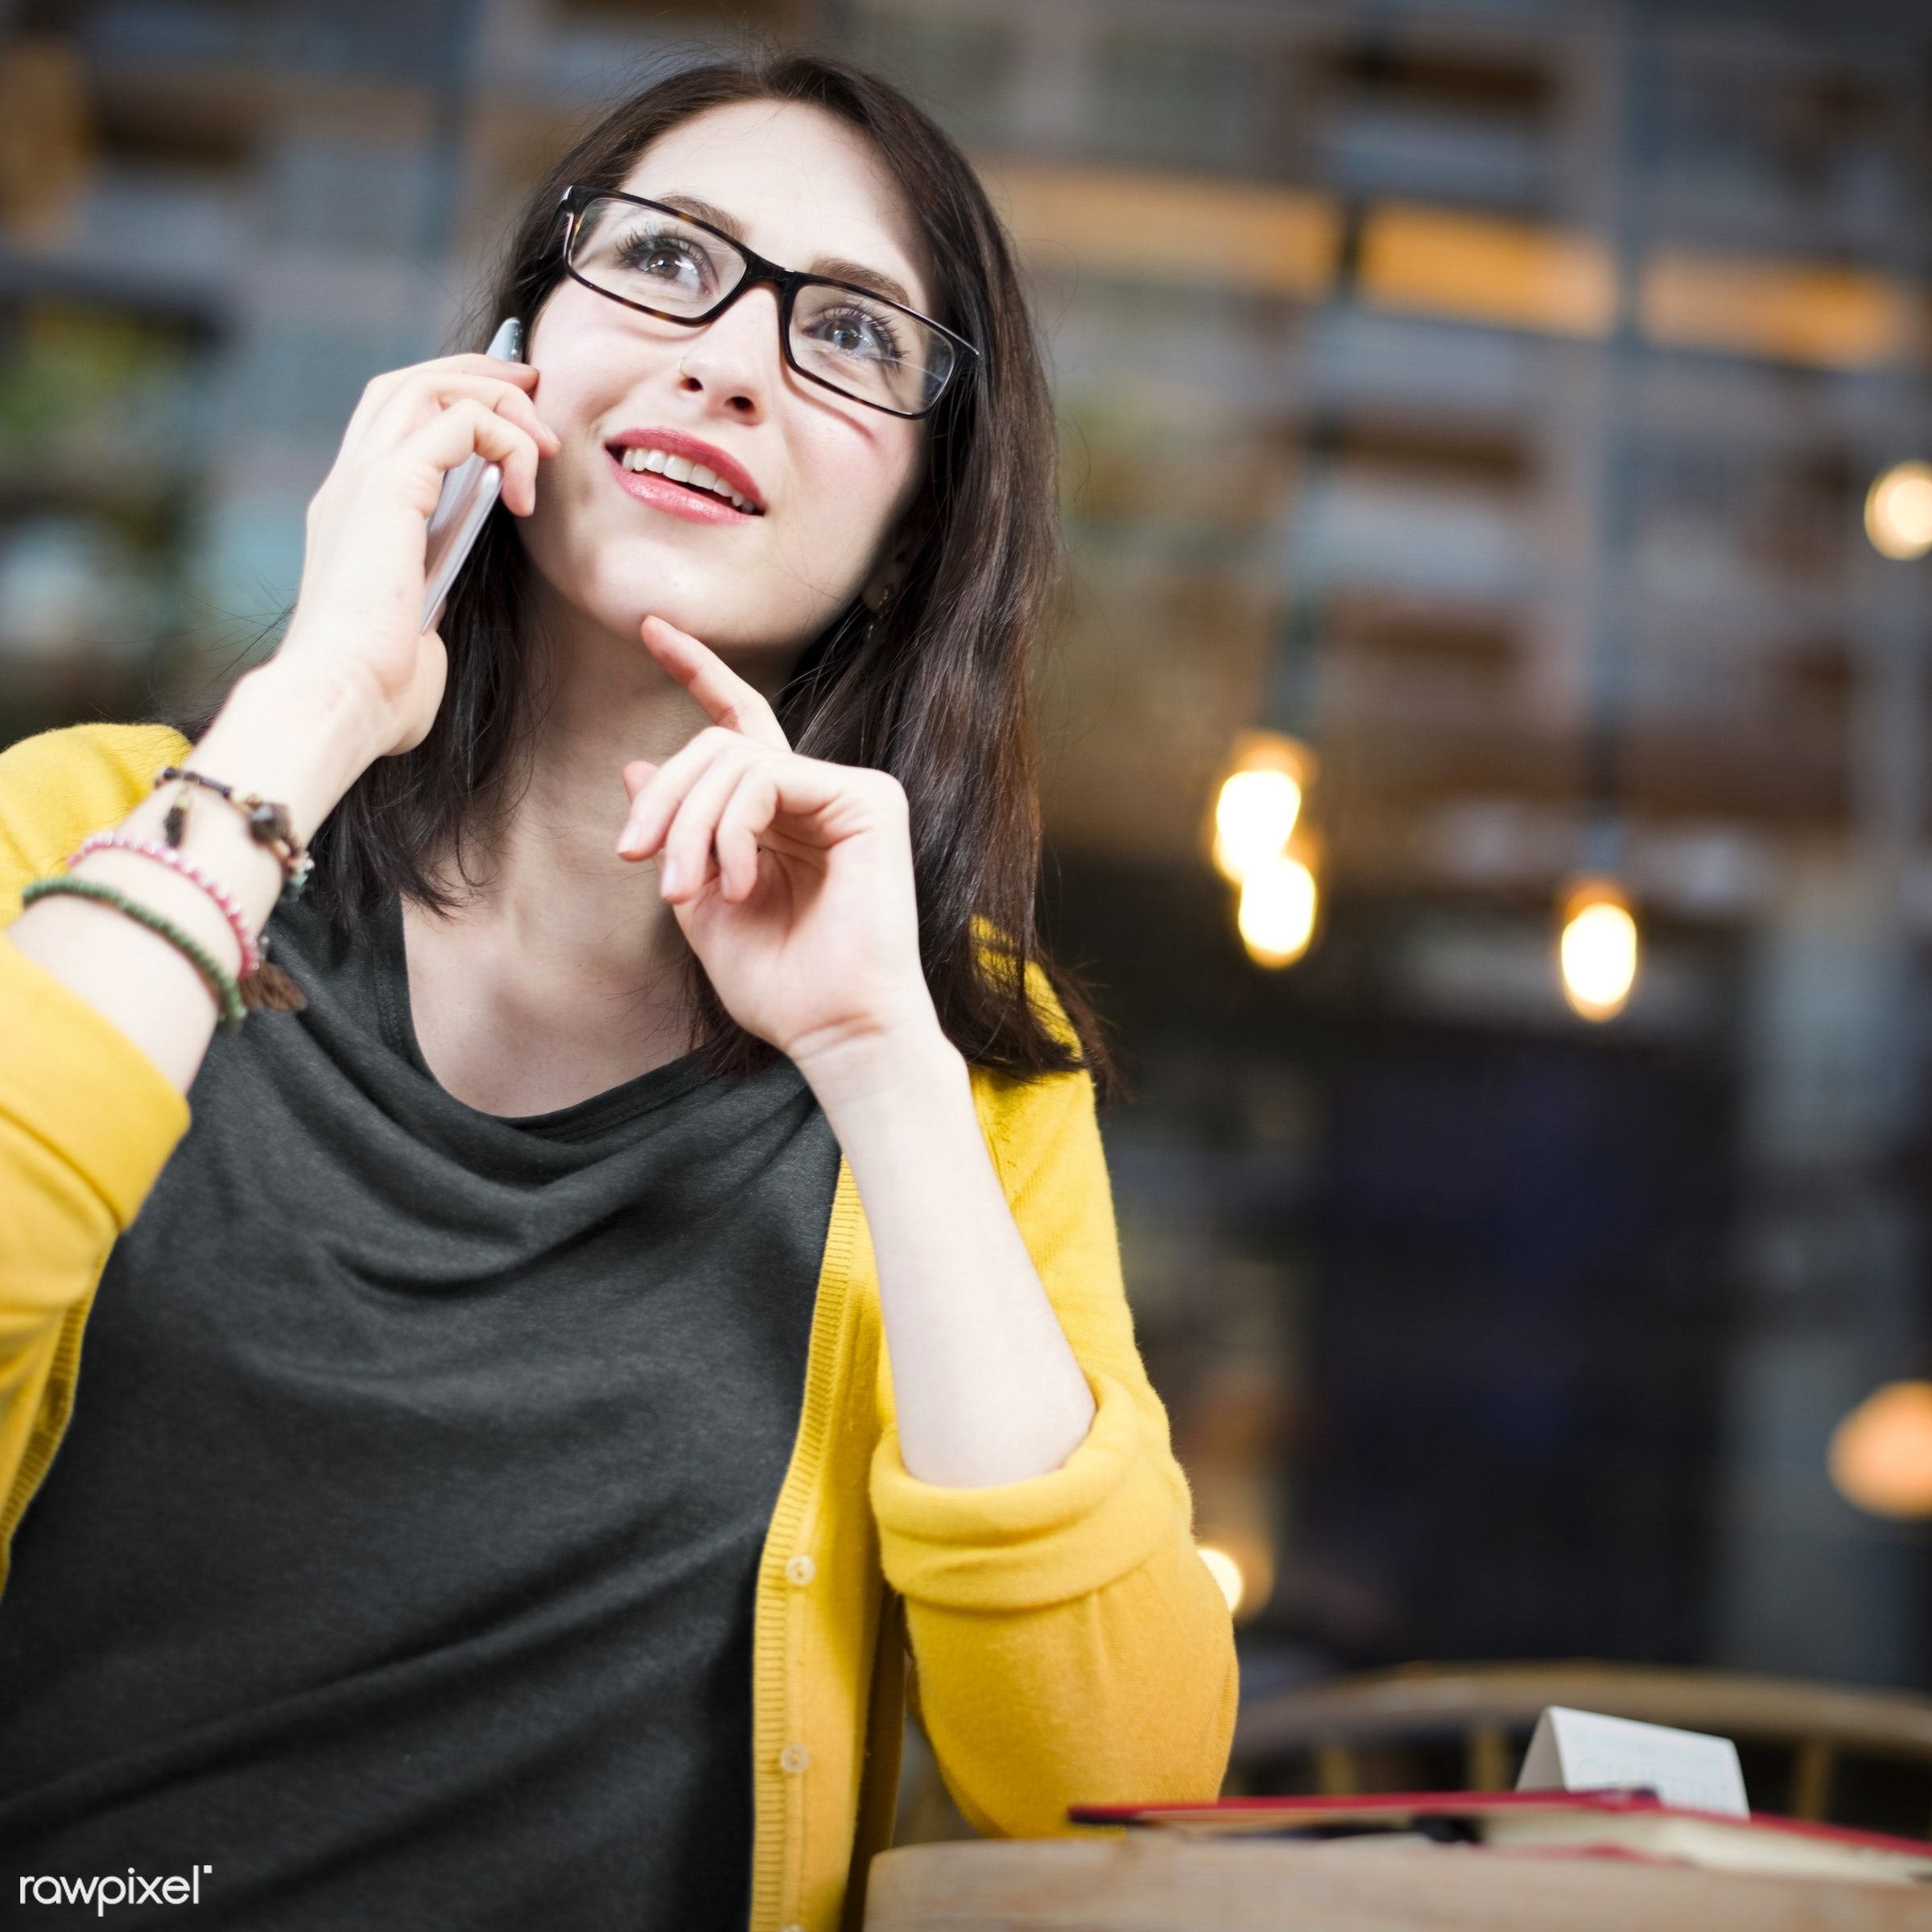 lifestyles, adult, alone, cafe, casual, college, communication, connection, digital device, education, girl, glasses, global...